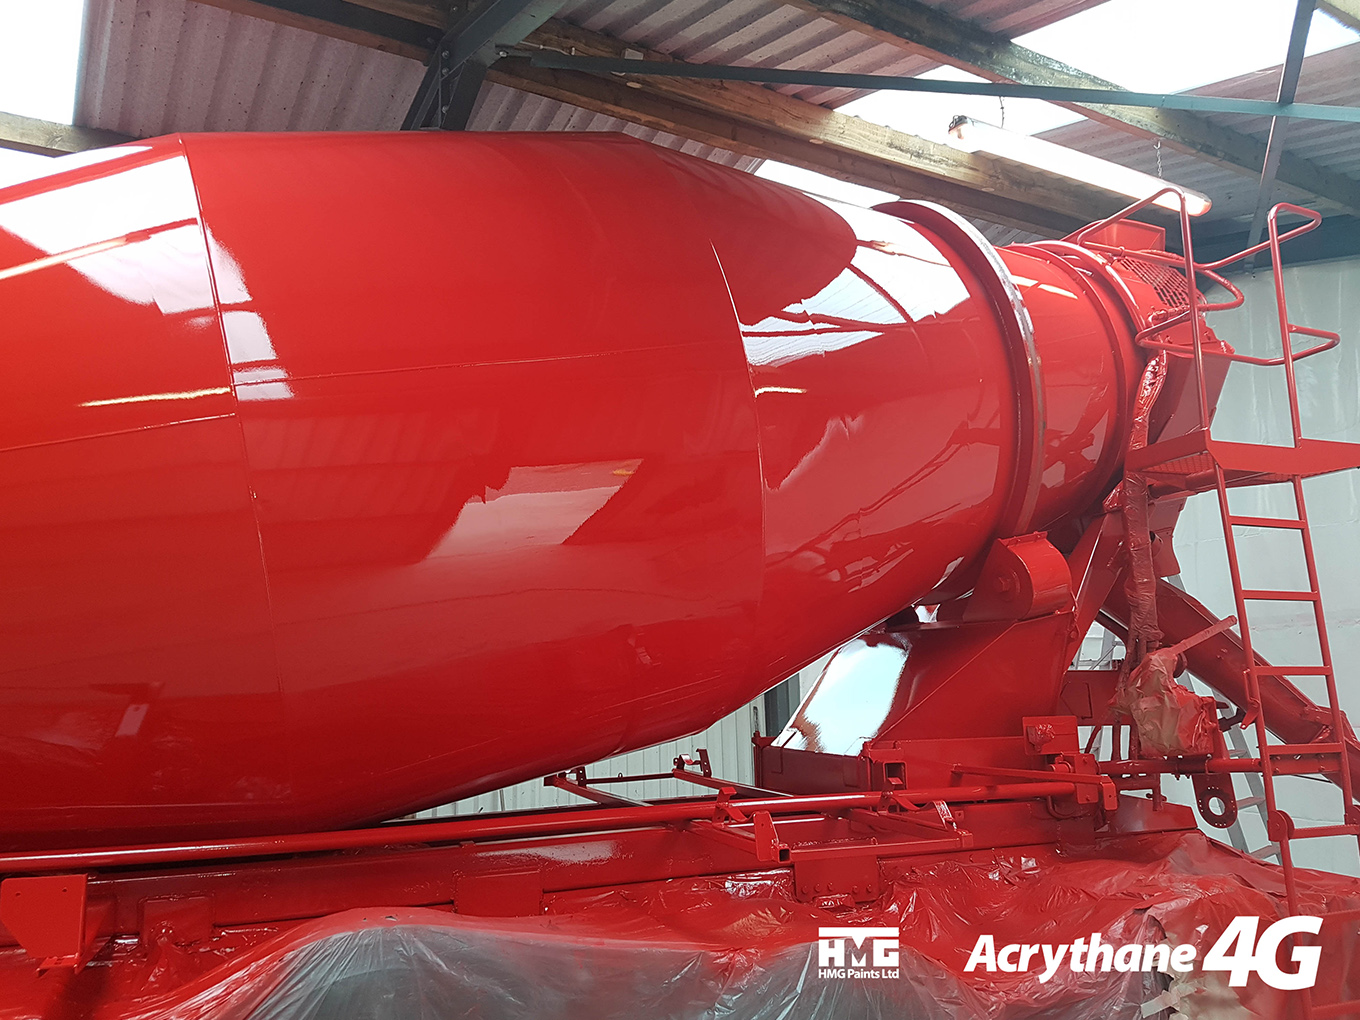 Acrythane 4G High Gloss Finish Red